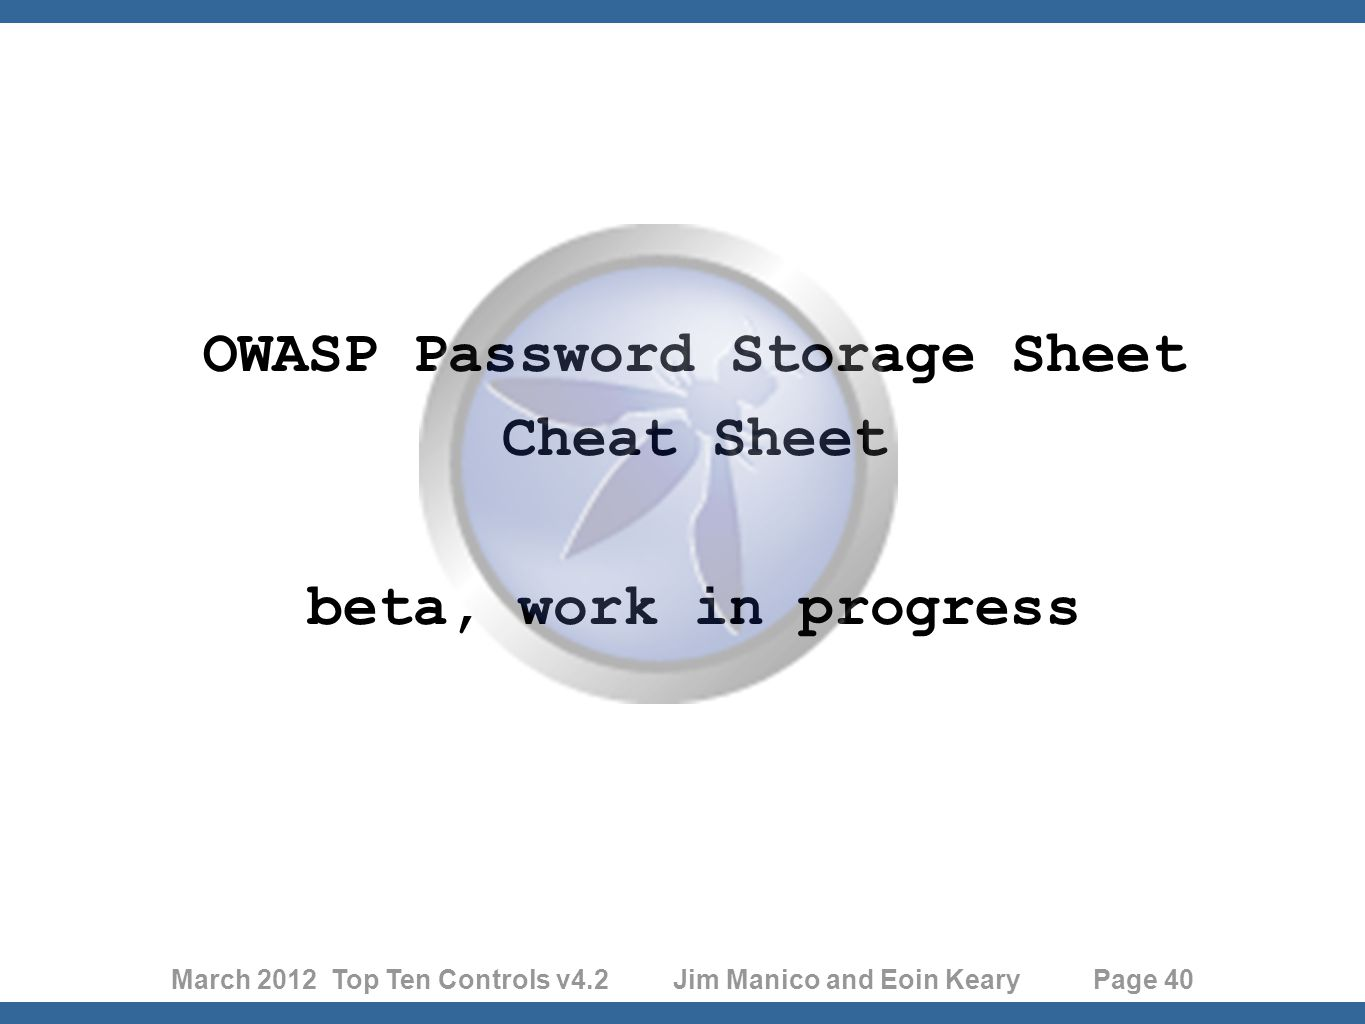 March 2012 Top Ten Controls v4.2 Jim Manico and Eoin Keary Page 40 OWASP Password Storage Sheet Cheat Sheet beta, work in progress